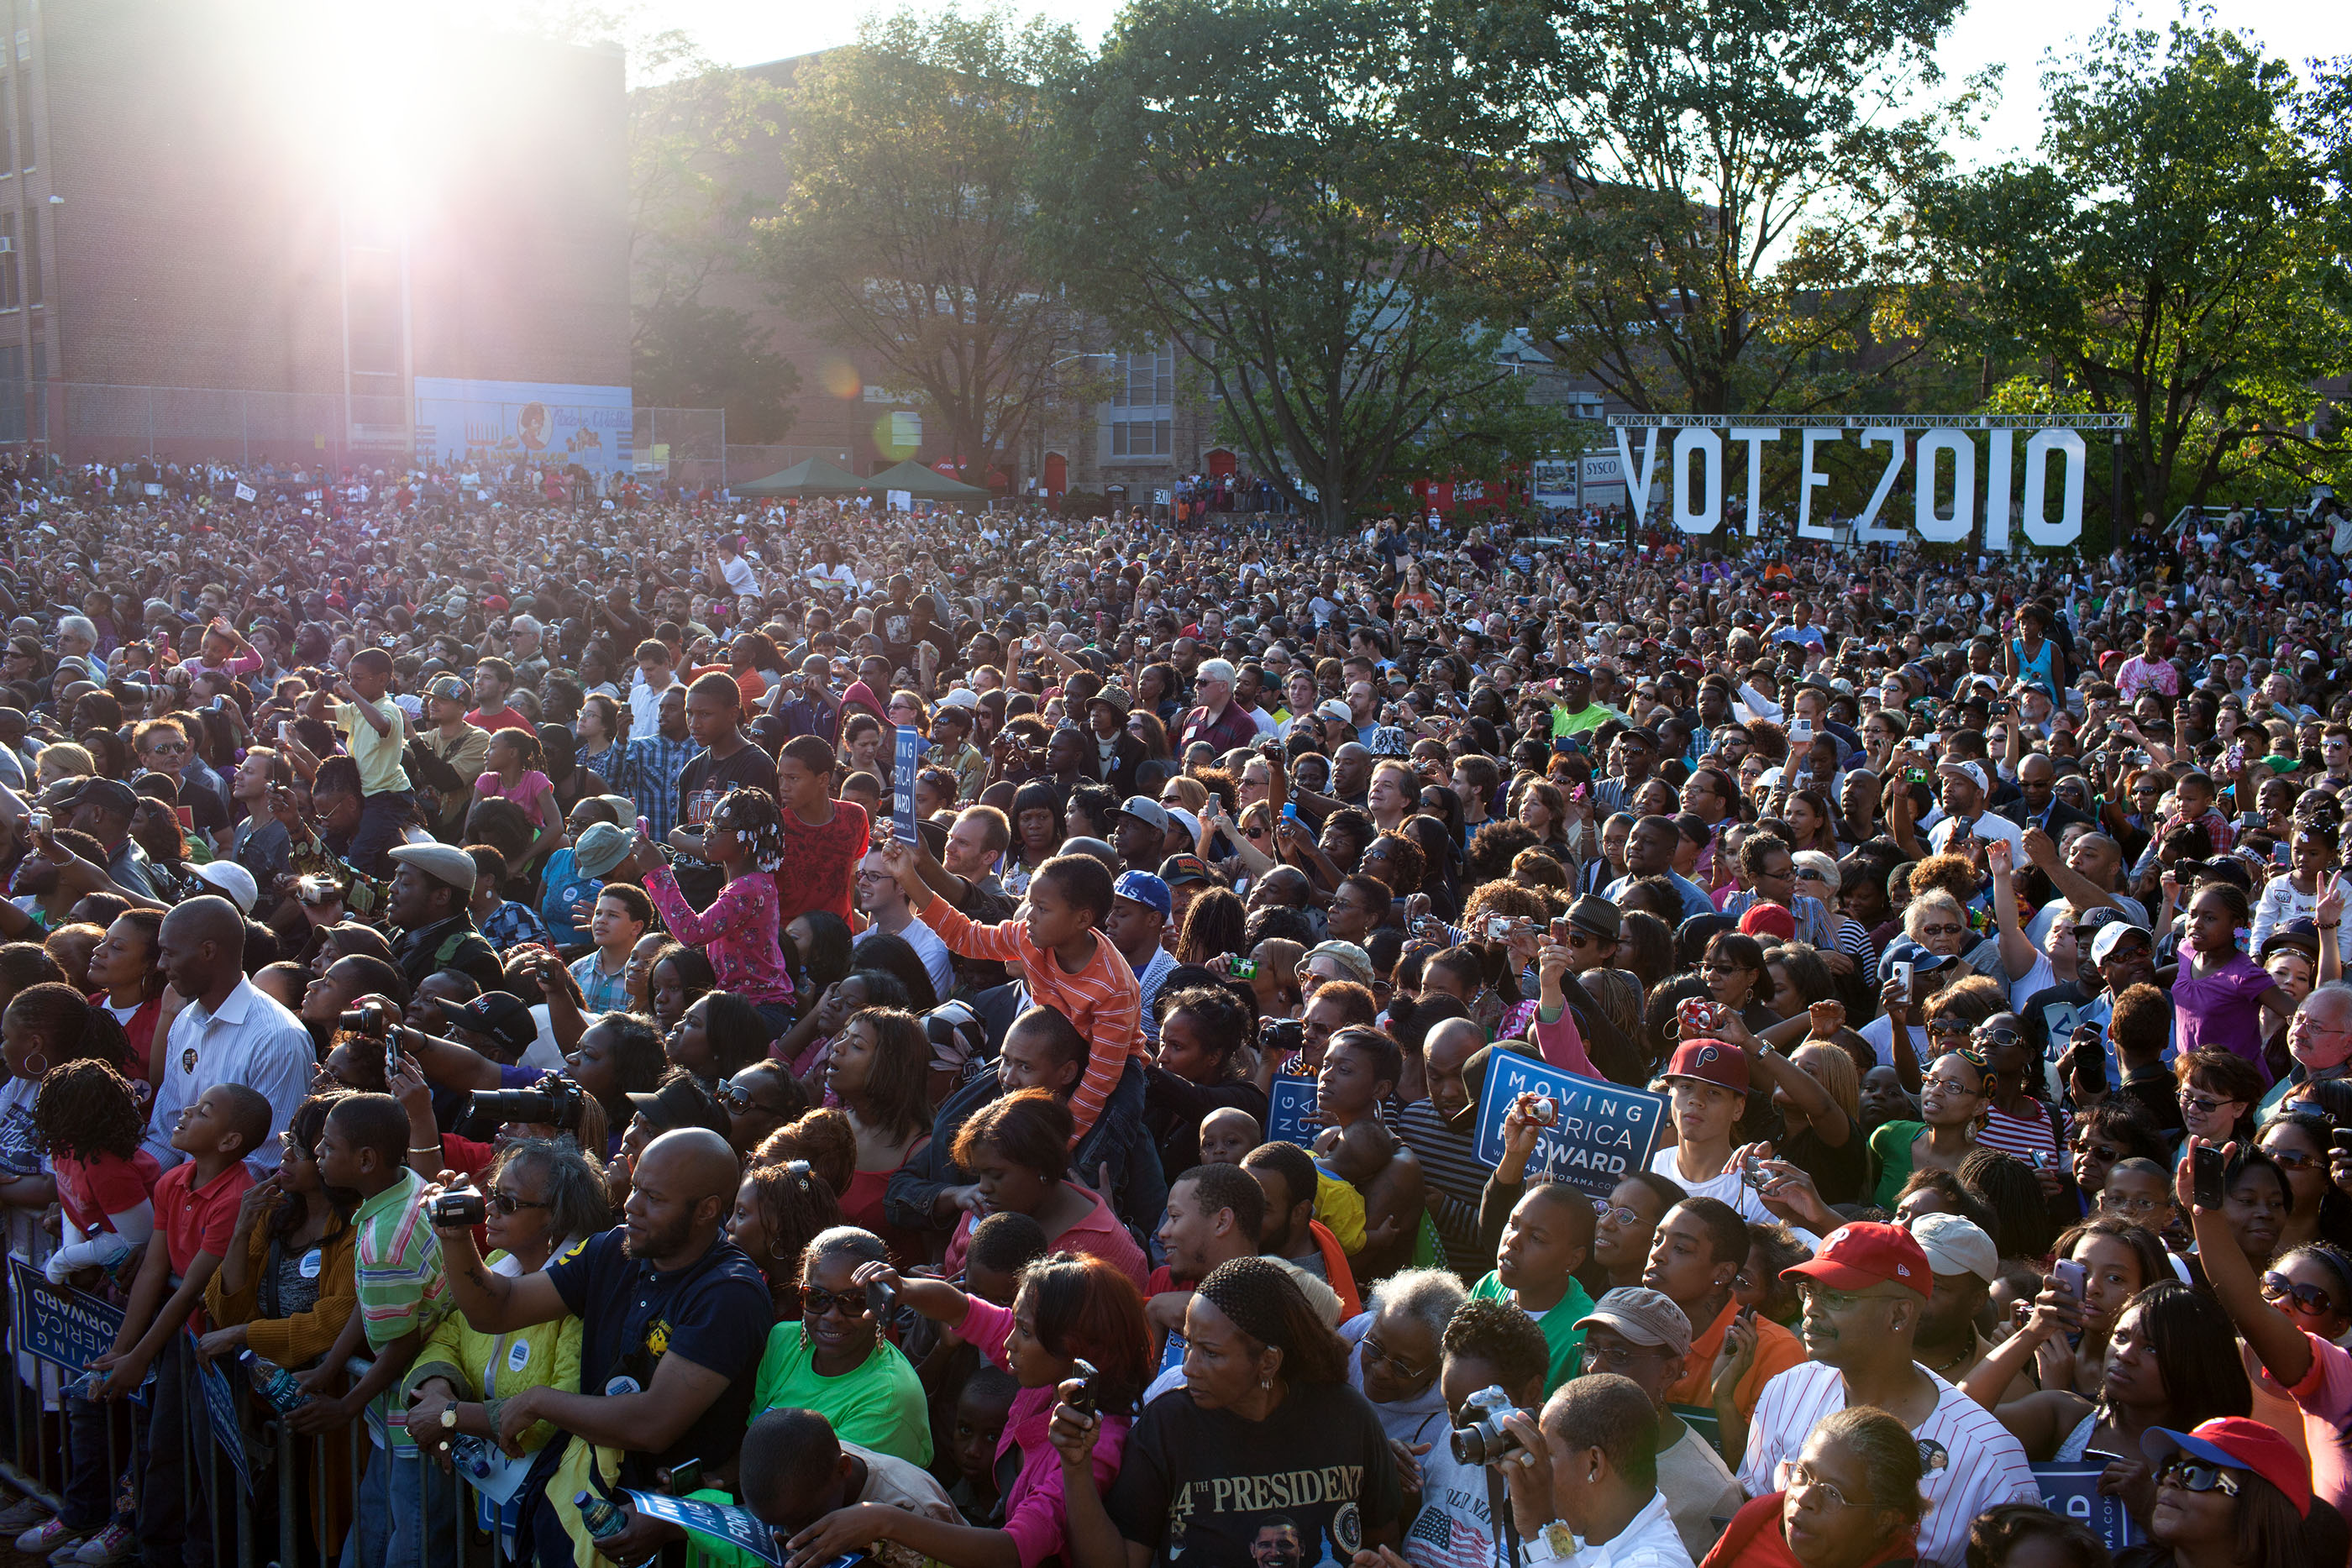 Pennsylvania, Oct. 10, 2010. The crowd at a rally in Philadelphia. (Official White House Photo by Pete Souza)